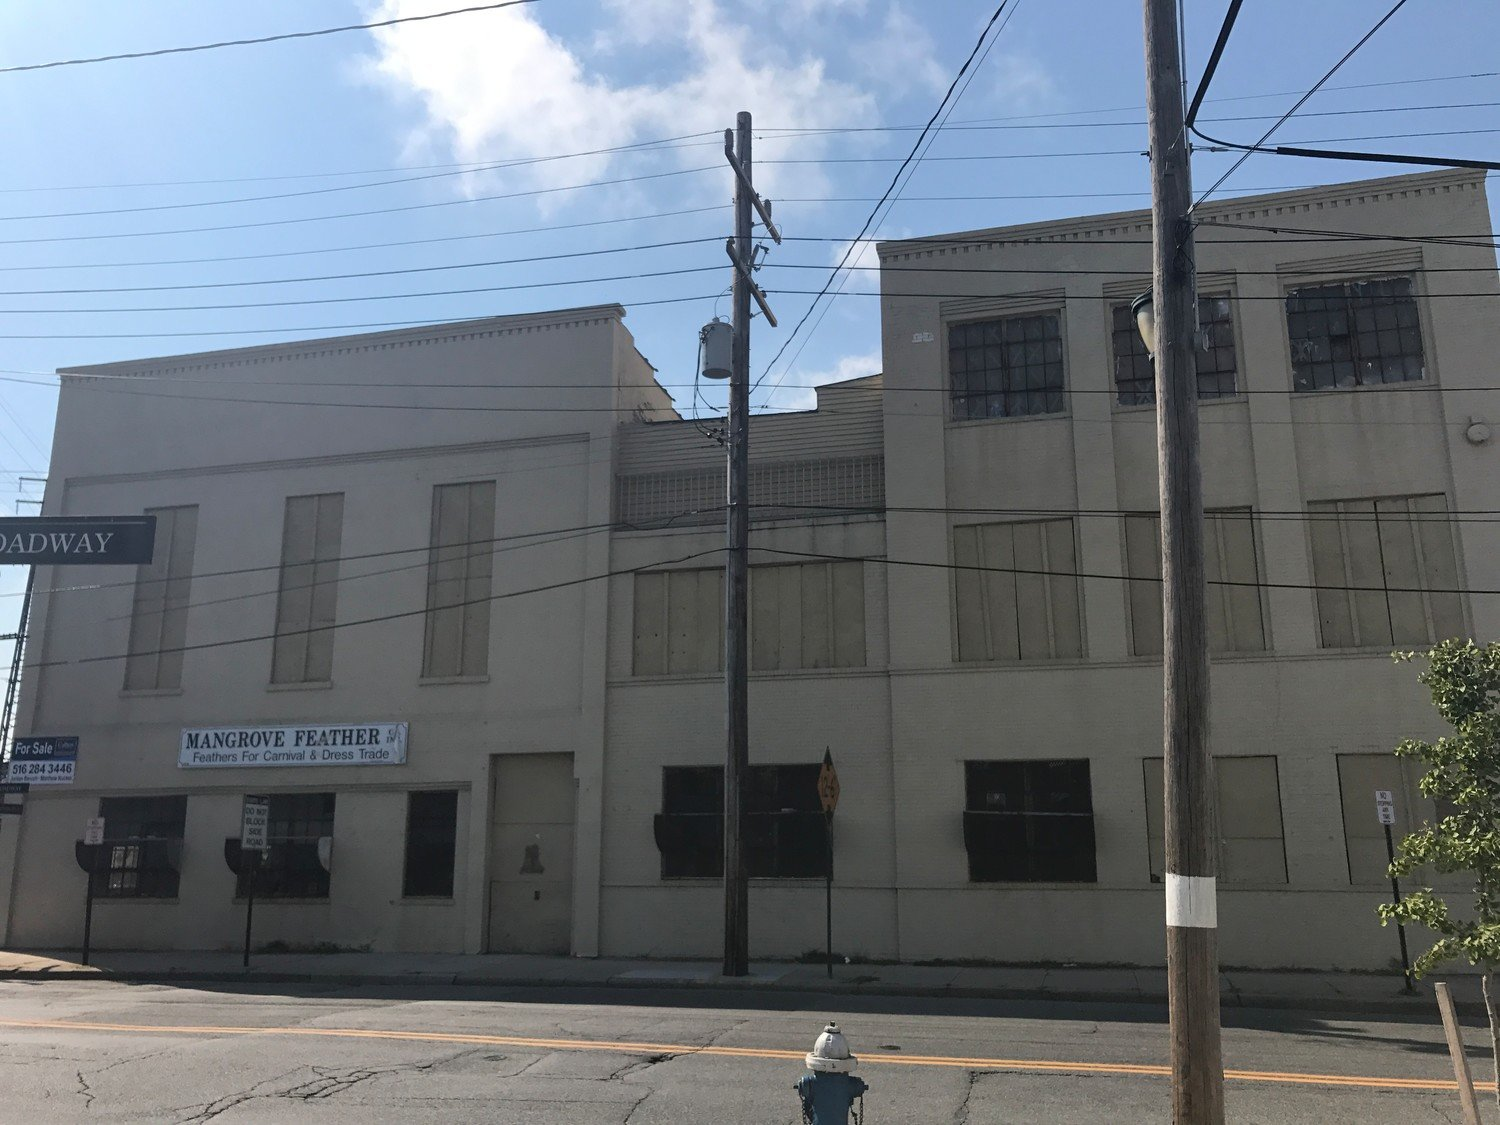 Lynbrook Mayor Alan Beach said a major focus for the New Year would be redeveloping the site of the former Mangrove Feather factory, which has been vacant for more than a decade.